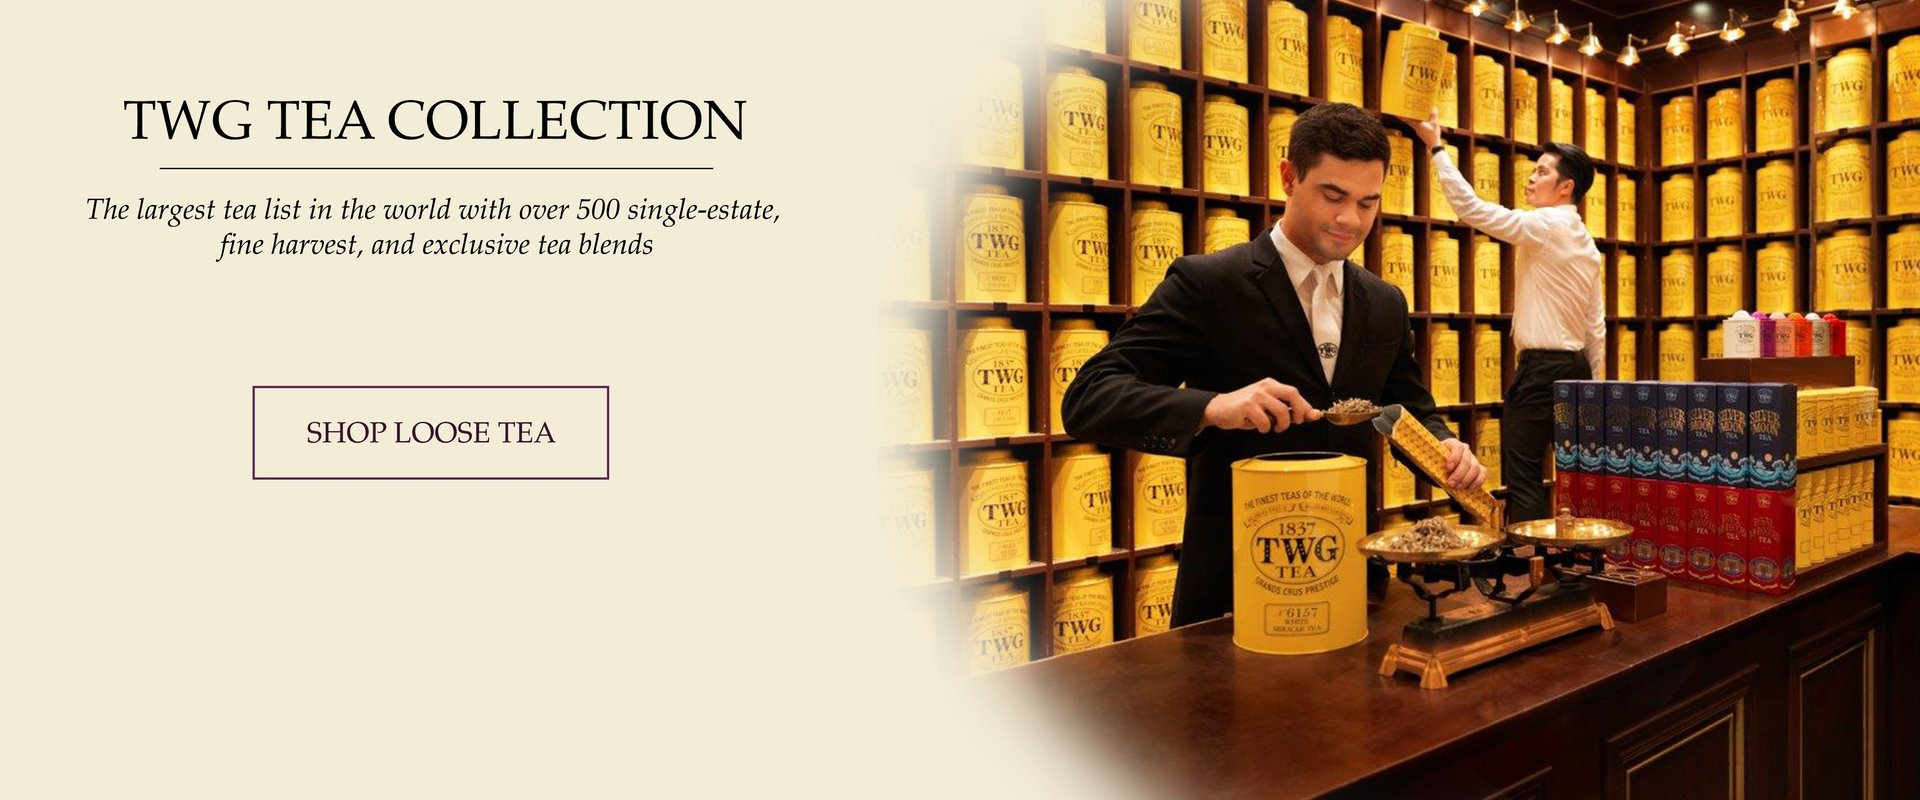 TWG Tea Salon & Boutique in Vancouver, serving afternoon tea, dinner, lunch, breakfast.